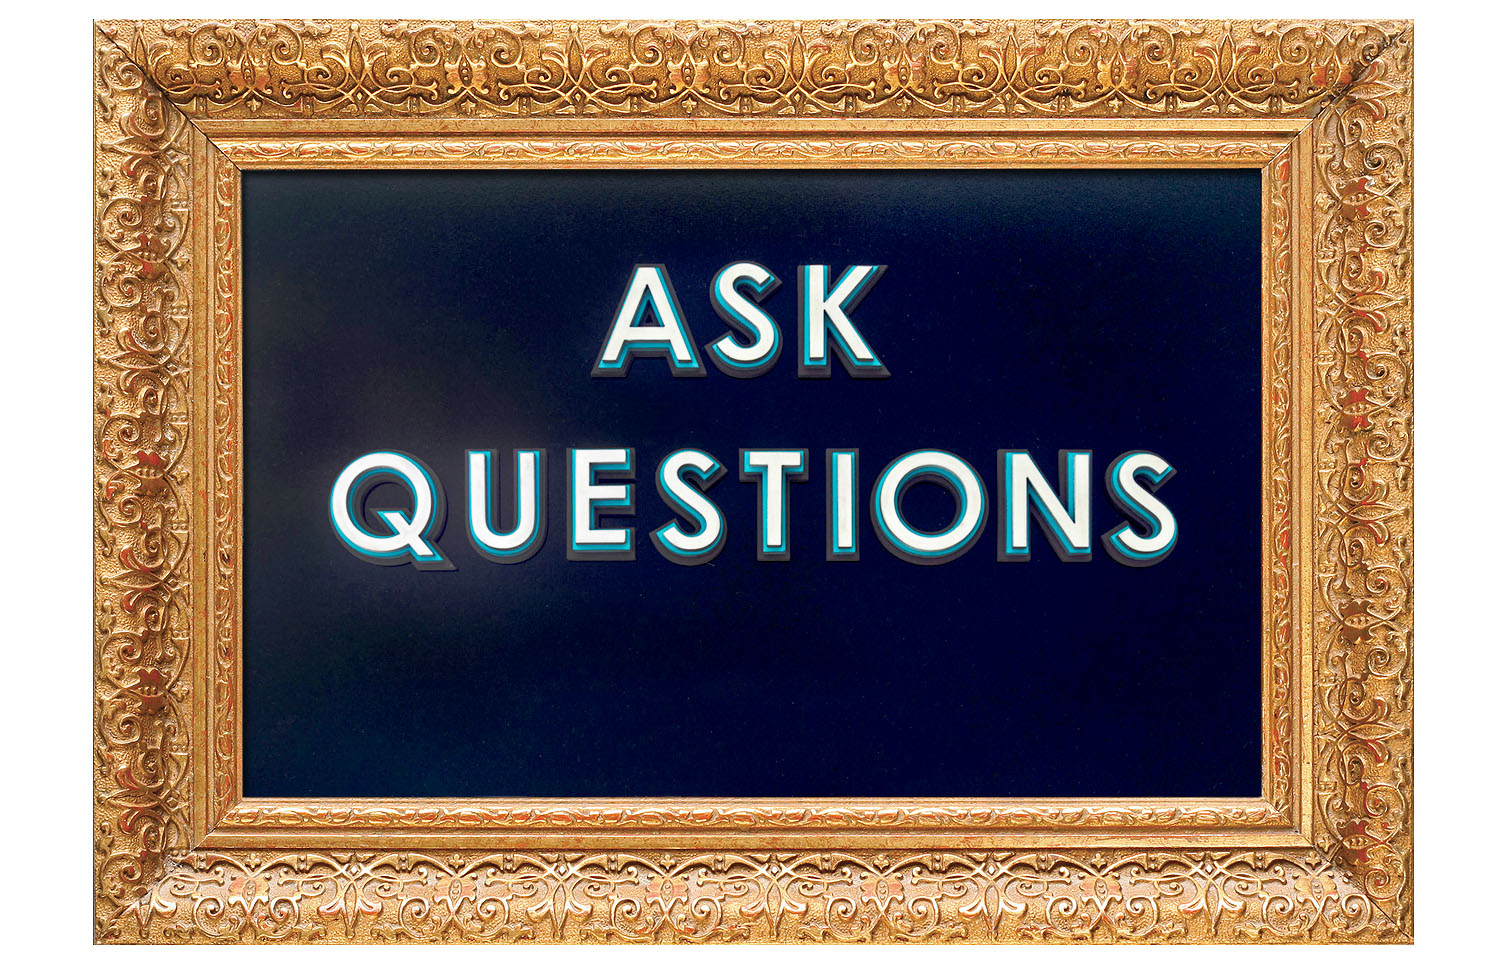 Ask Questions.jpg